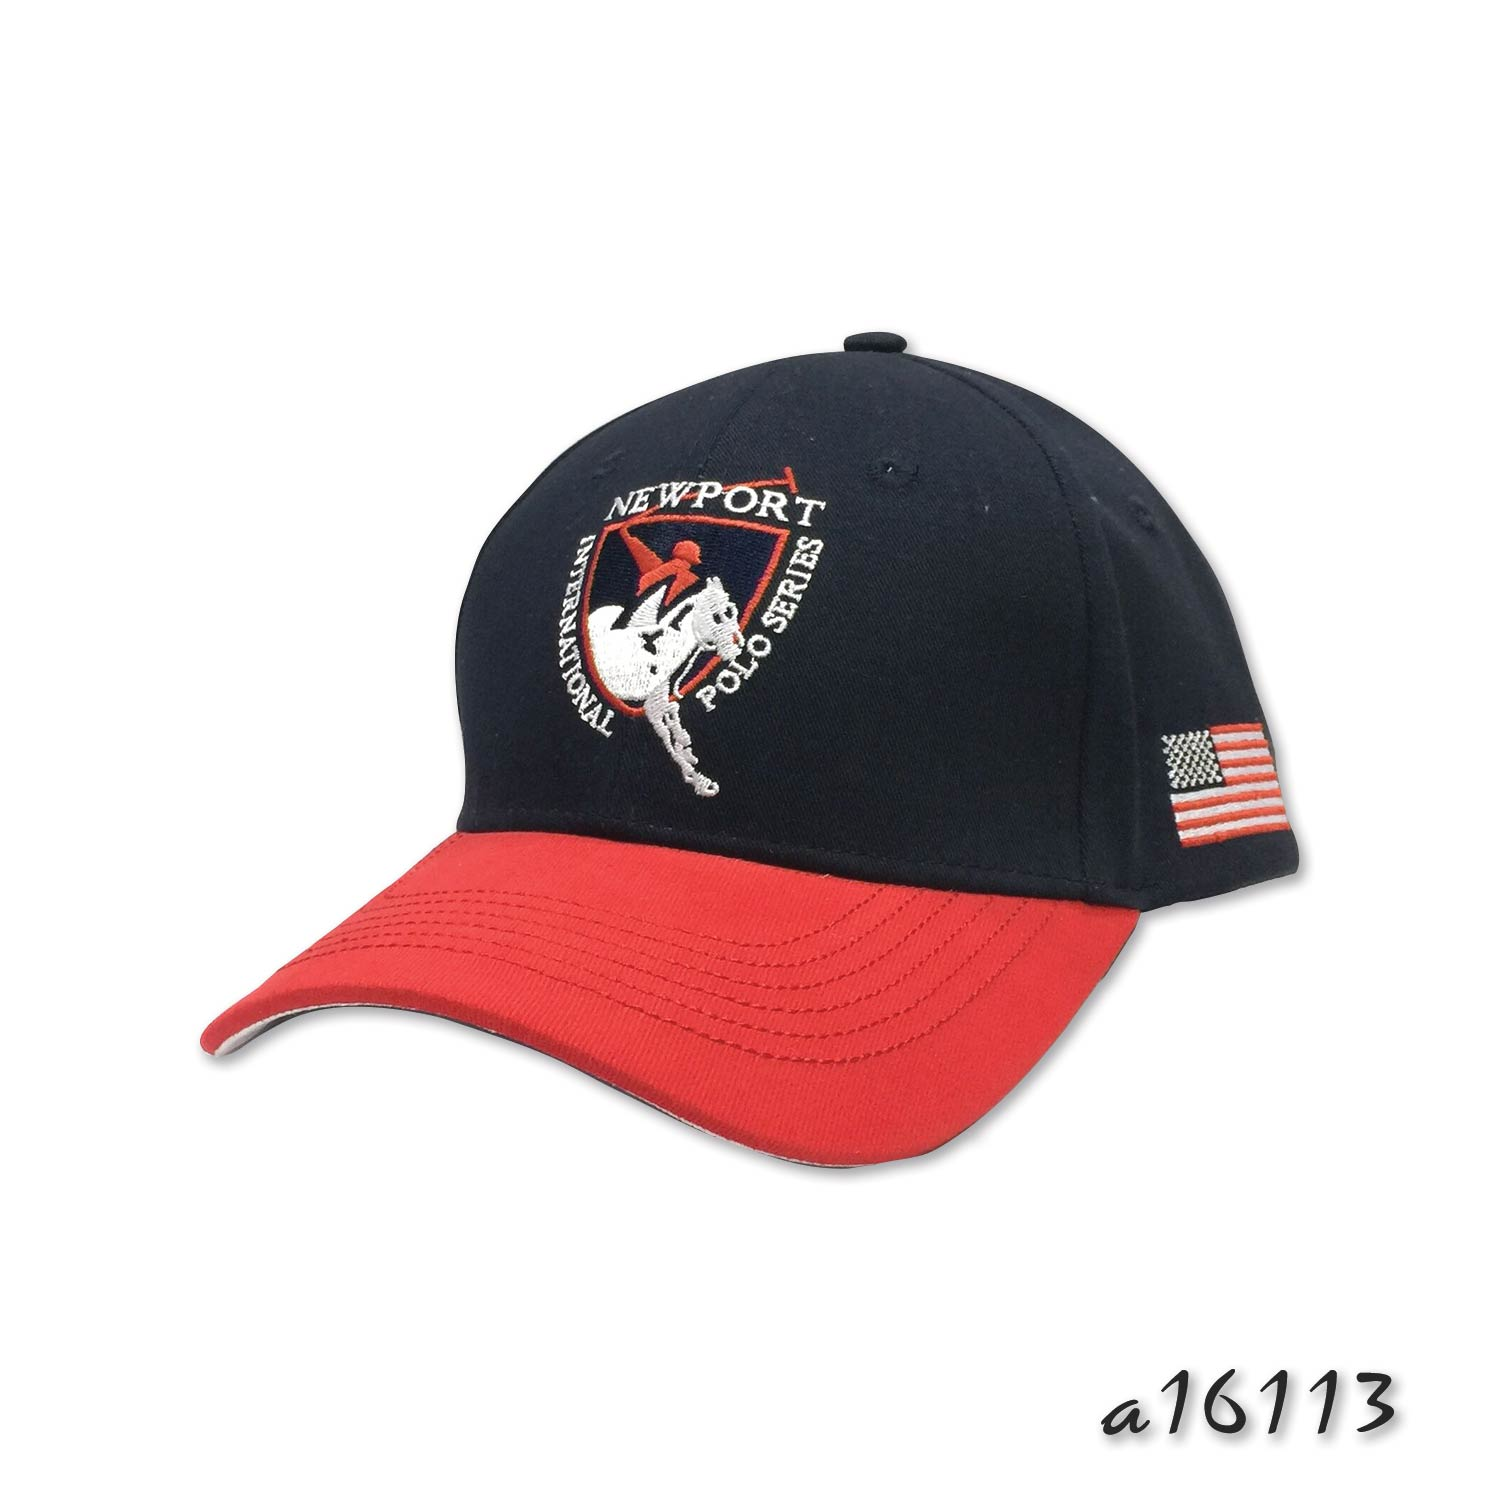 Two tone cap with fancy stitching and embroidery detail